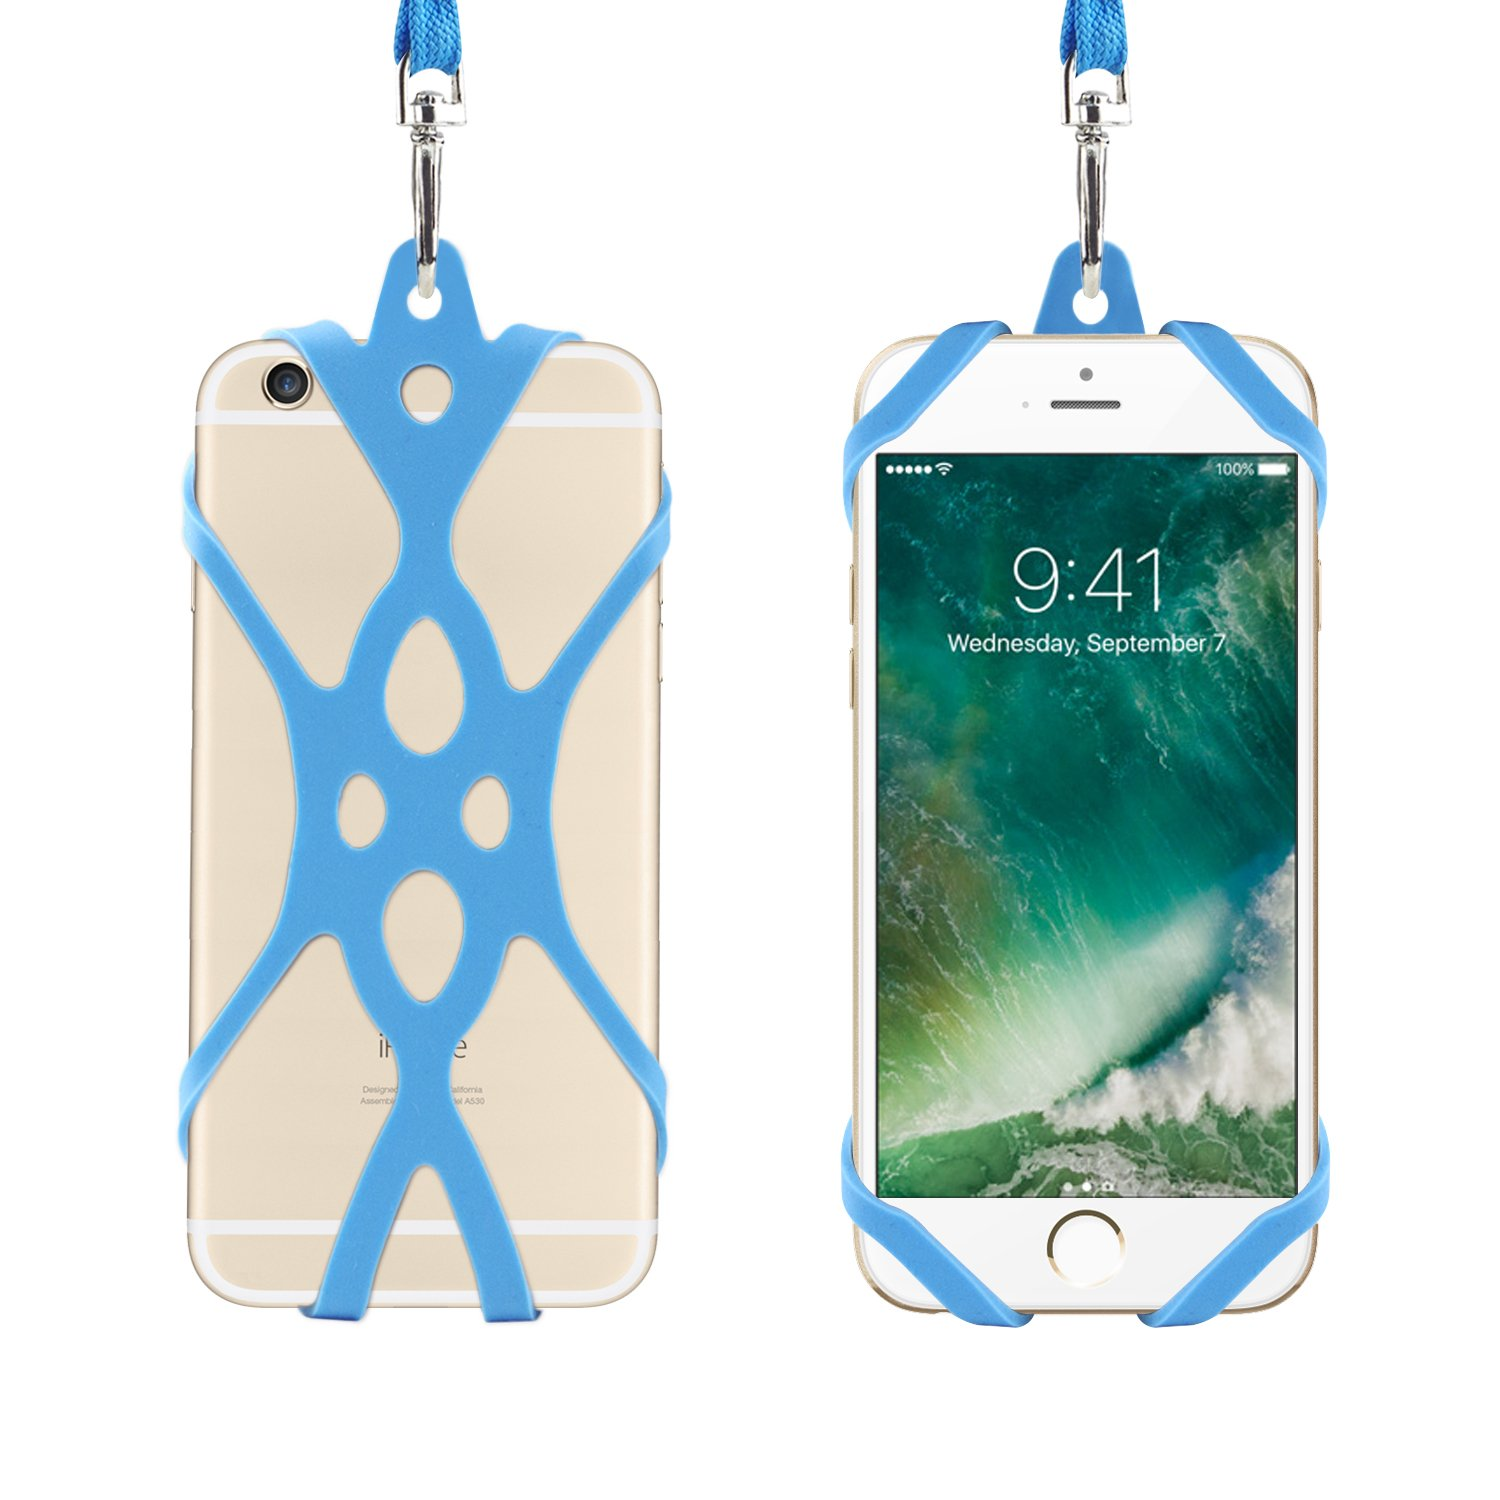 Remeel Phone Lanyard Strap with Universal Silicone Case Holder for iPhone X iPhone 8/plus iPhone 7/plus iPhone 6/6s/plus and Even All Size Smartphone (Indigo)